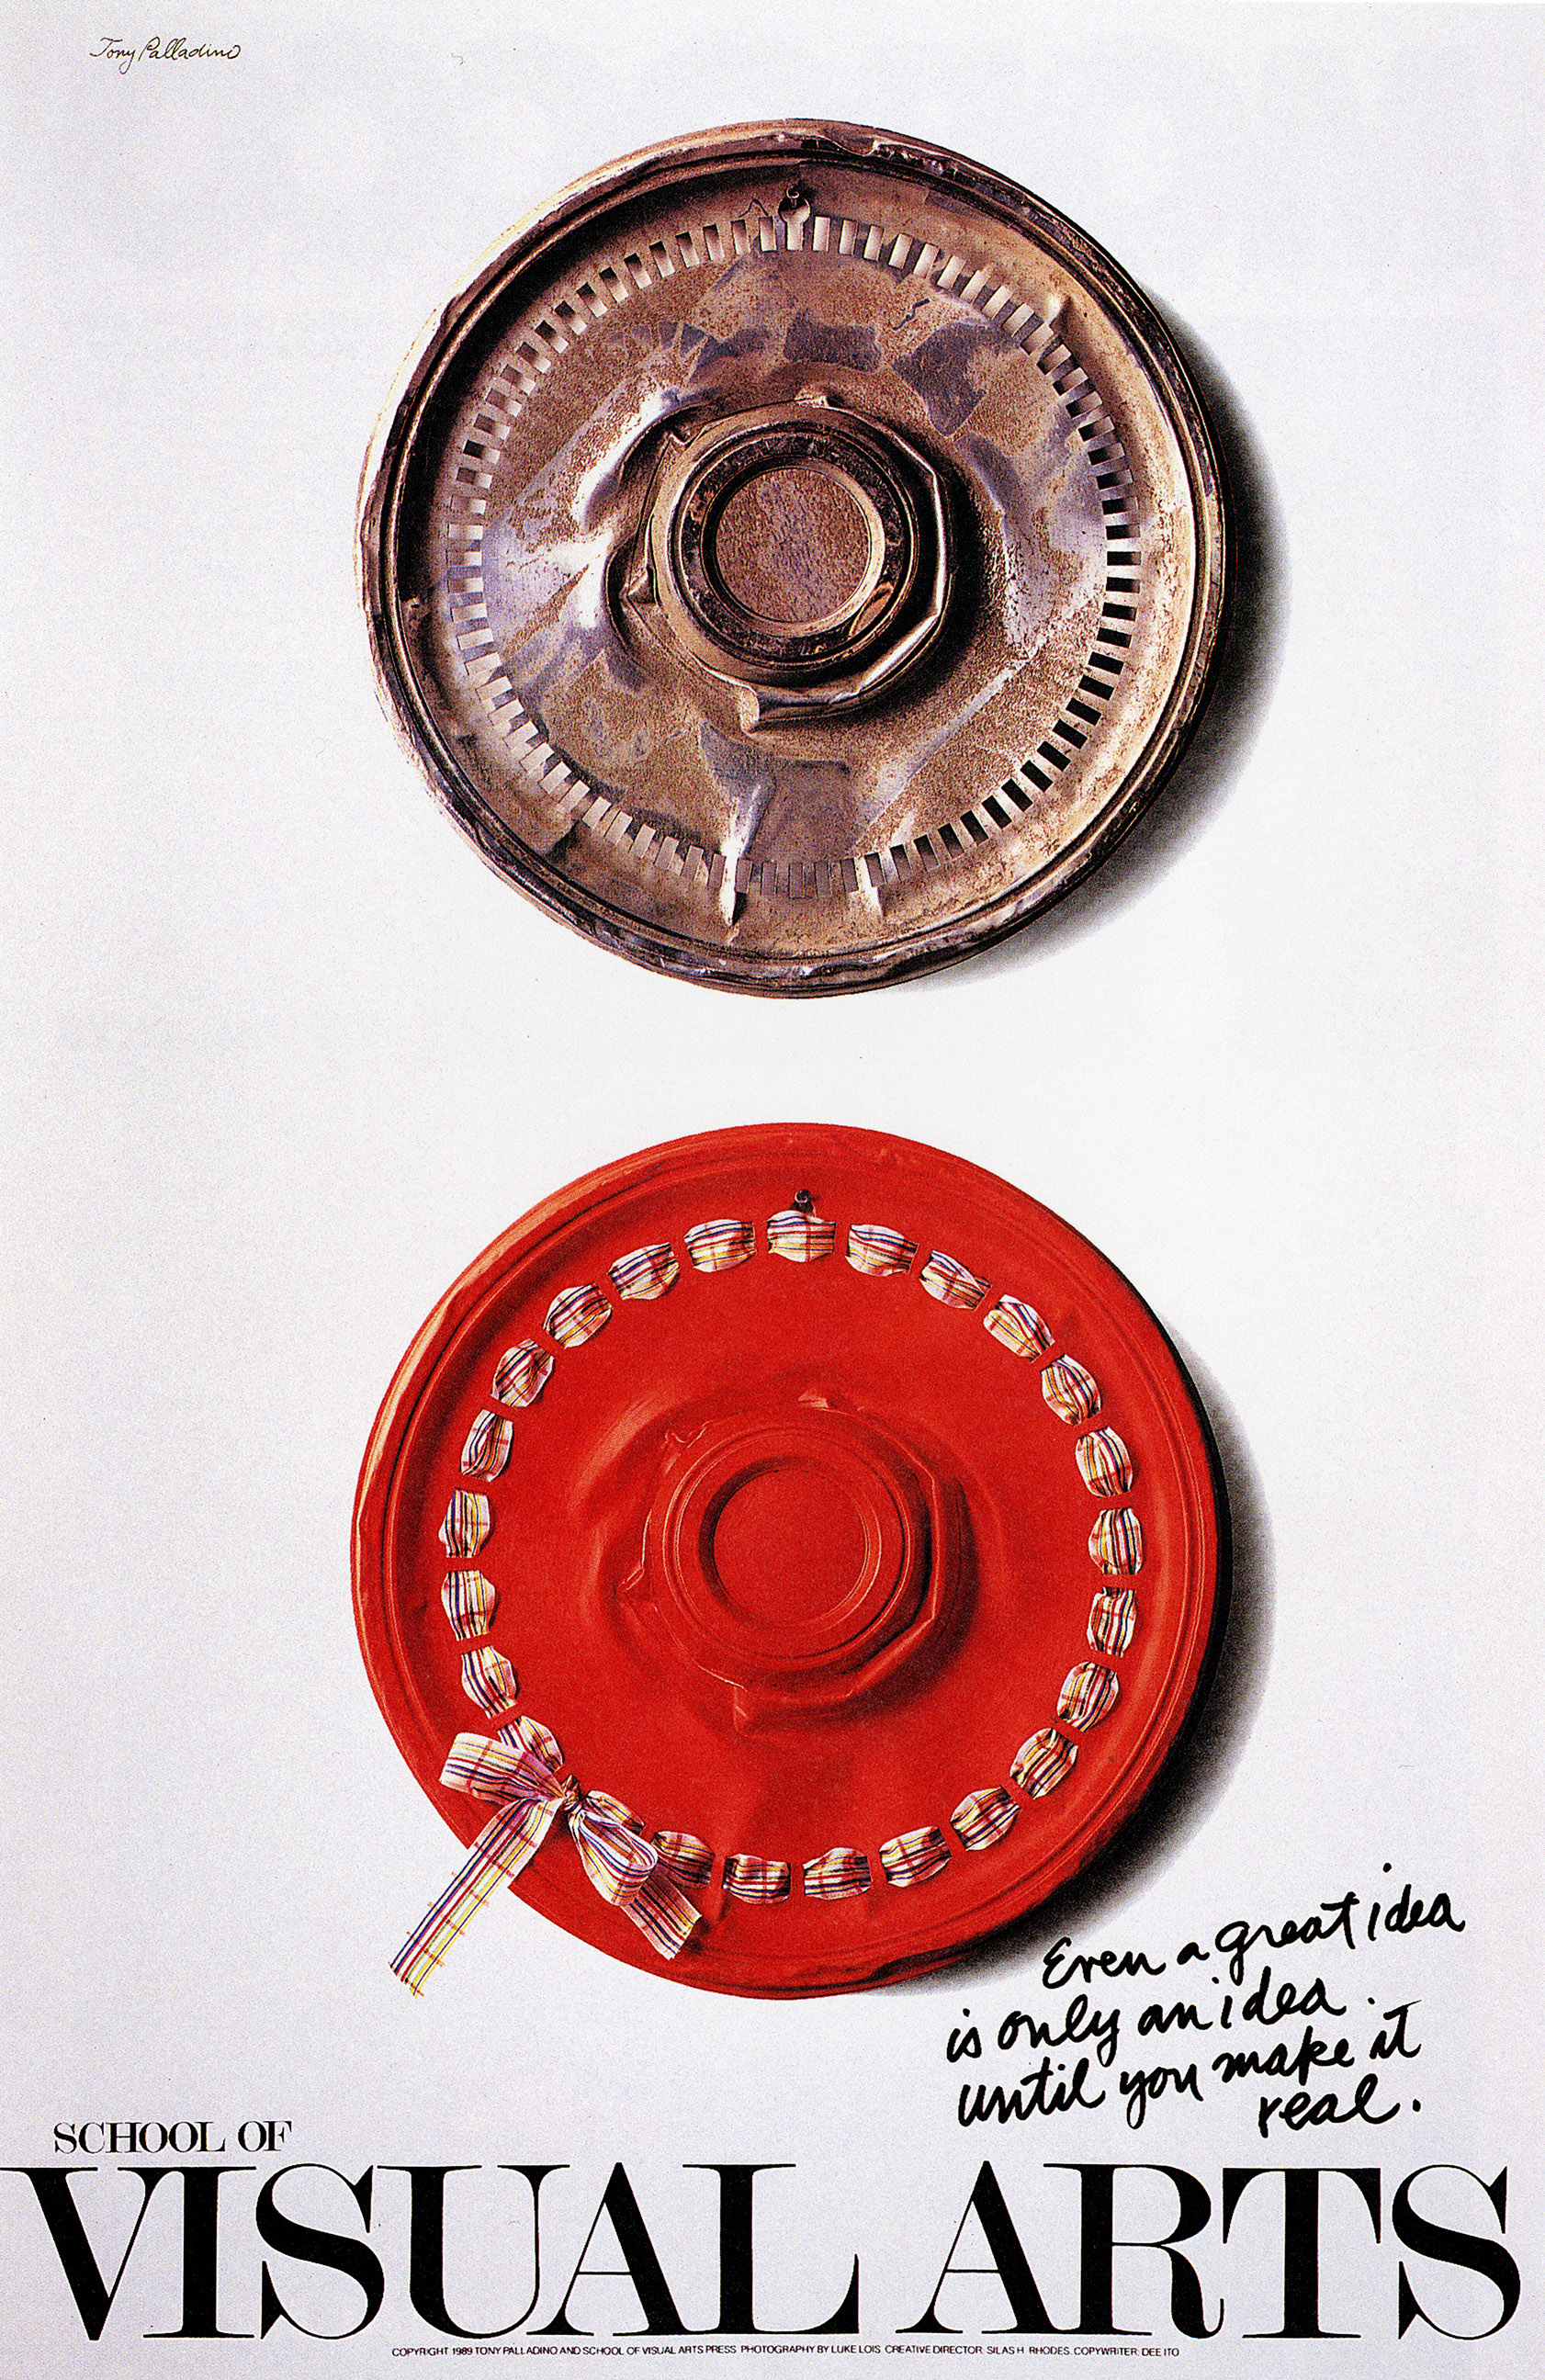 Photograph of two hubcaps against a white background, presented vertically; top one is rusted, while the bottom one is painted red with a ribbon and bow threaded through it.